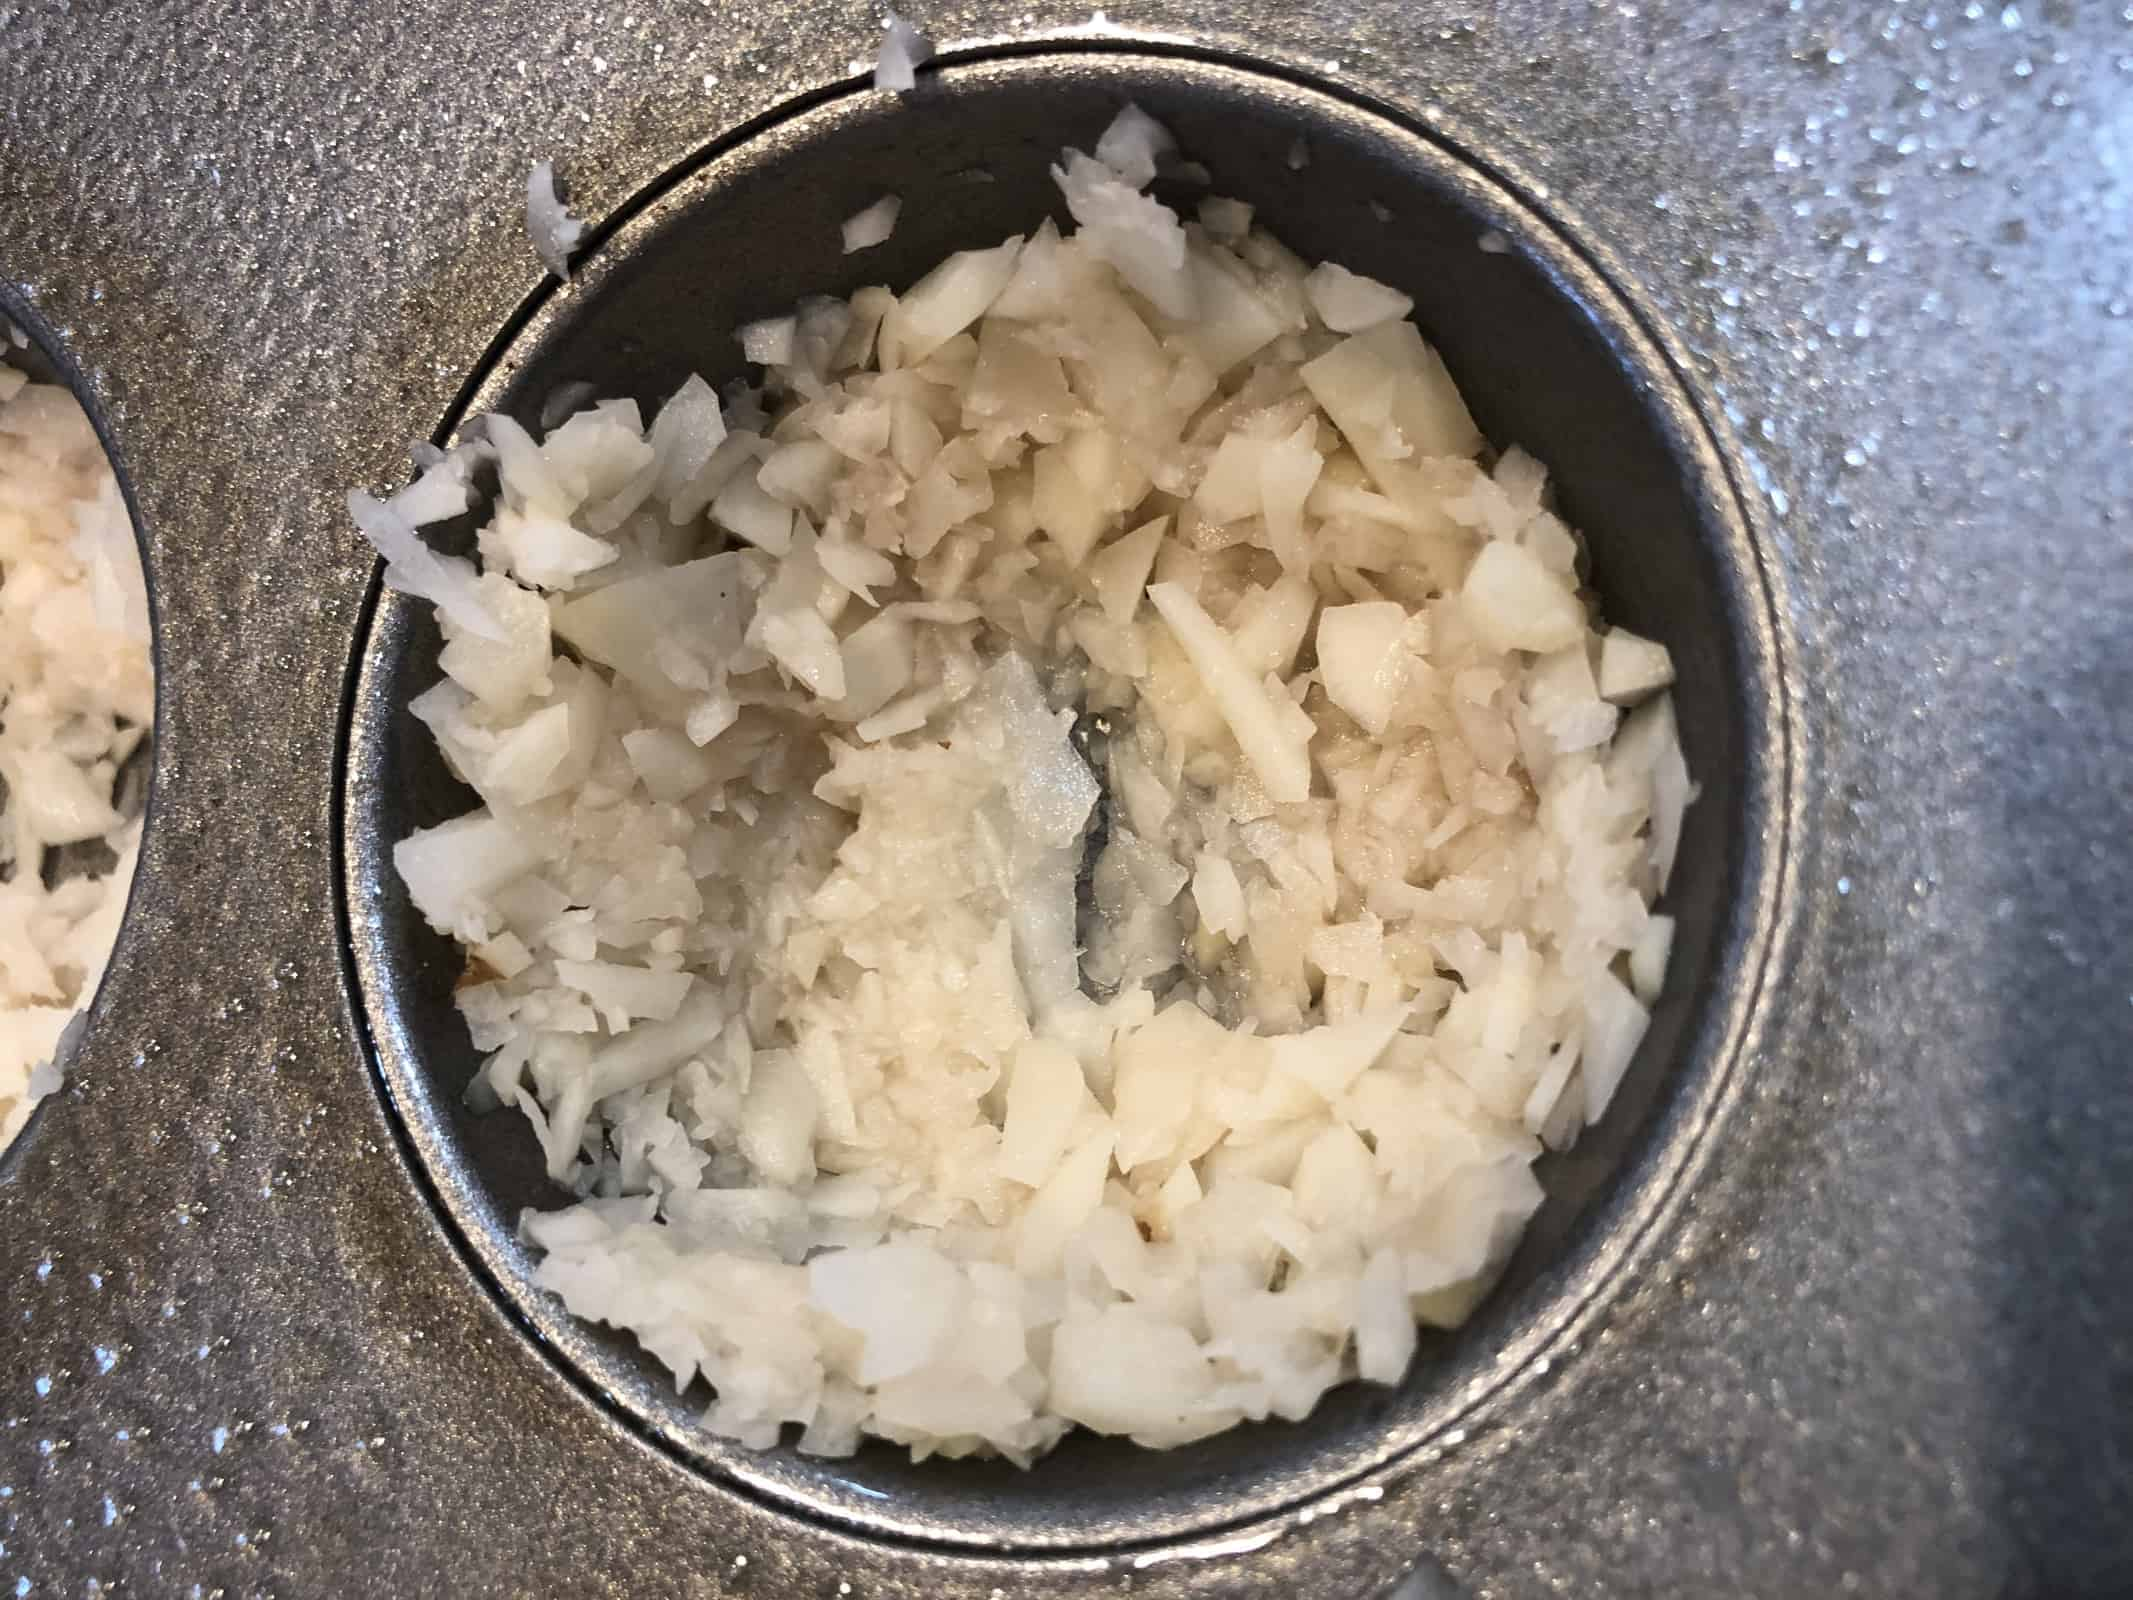 Shredded Potatoes pressed in muffin tin hole